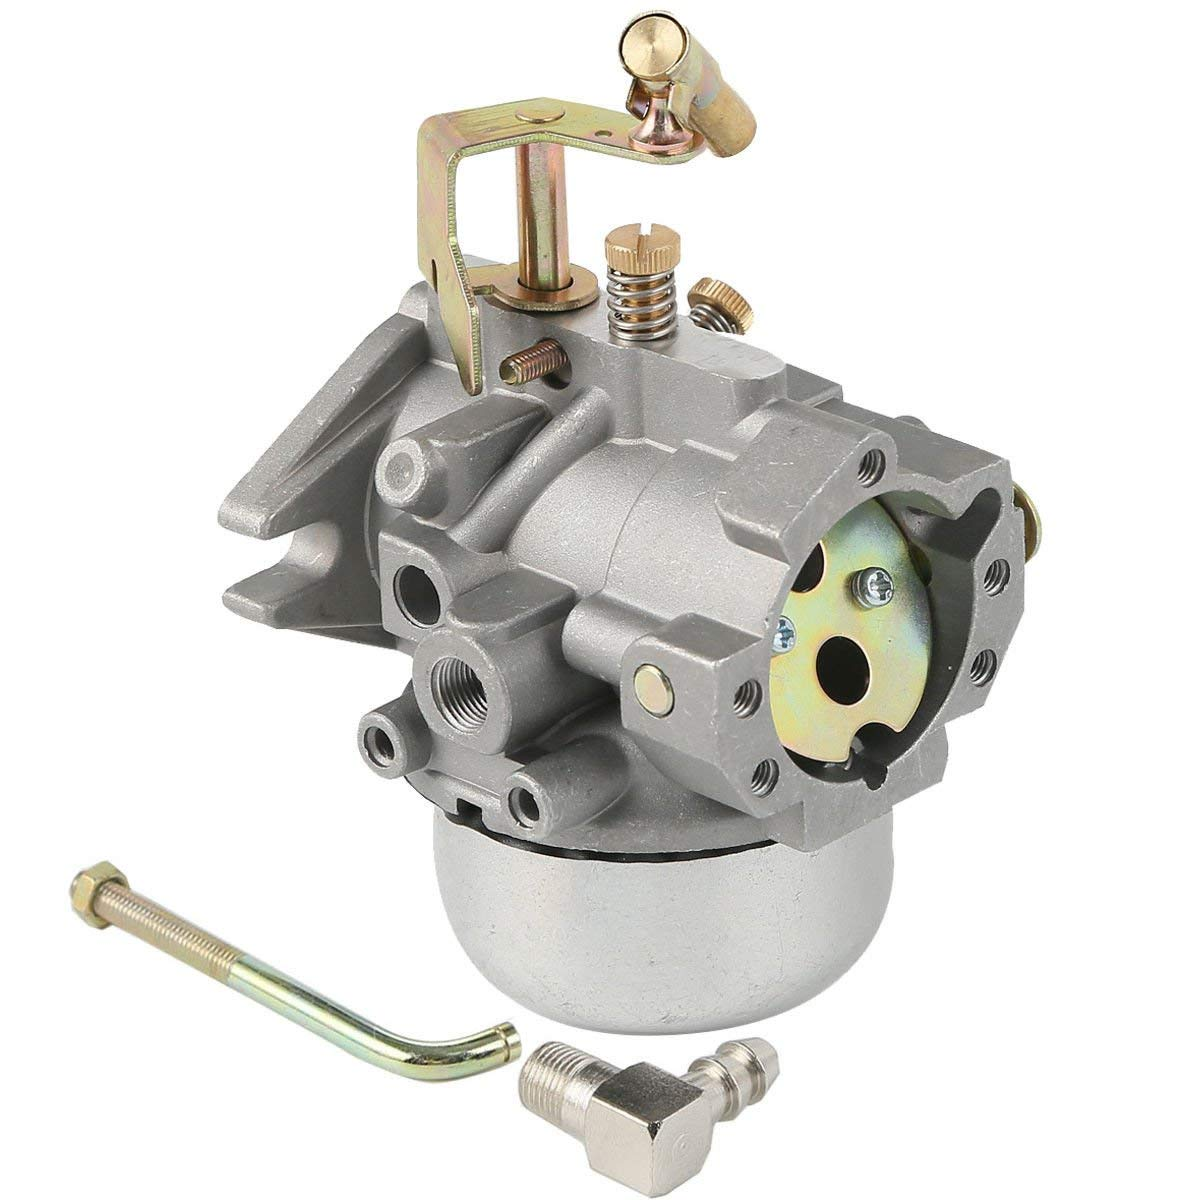 Cheap 16hp Kohler Engine, find 16hp Kohler Engine deals on line at